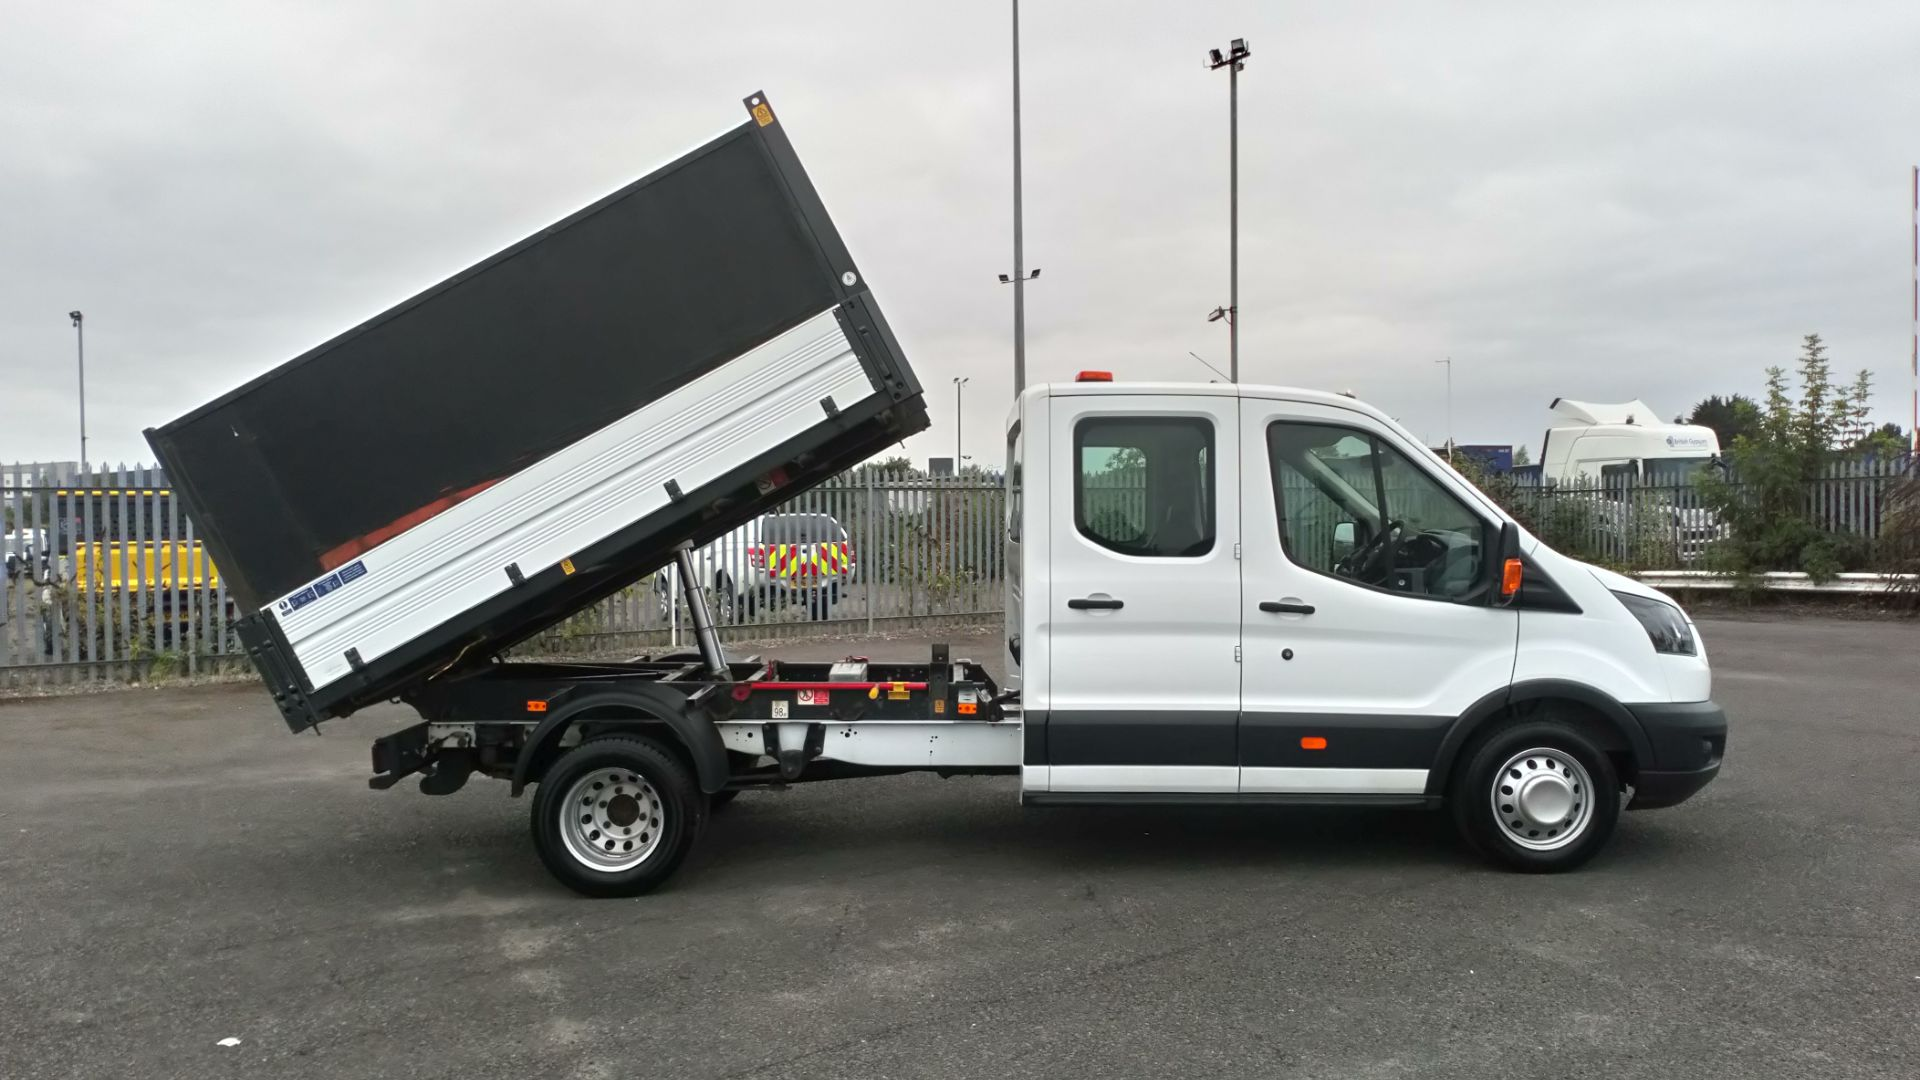 2018 Ford Transit 2.0 Tdci 130Ps H2 Double Cab Tipper (BL18UYX) Image 10